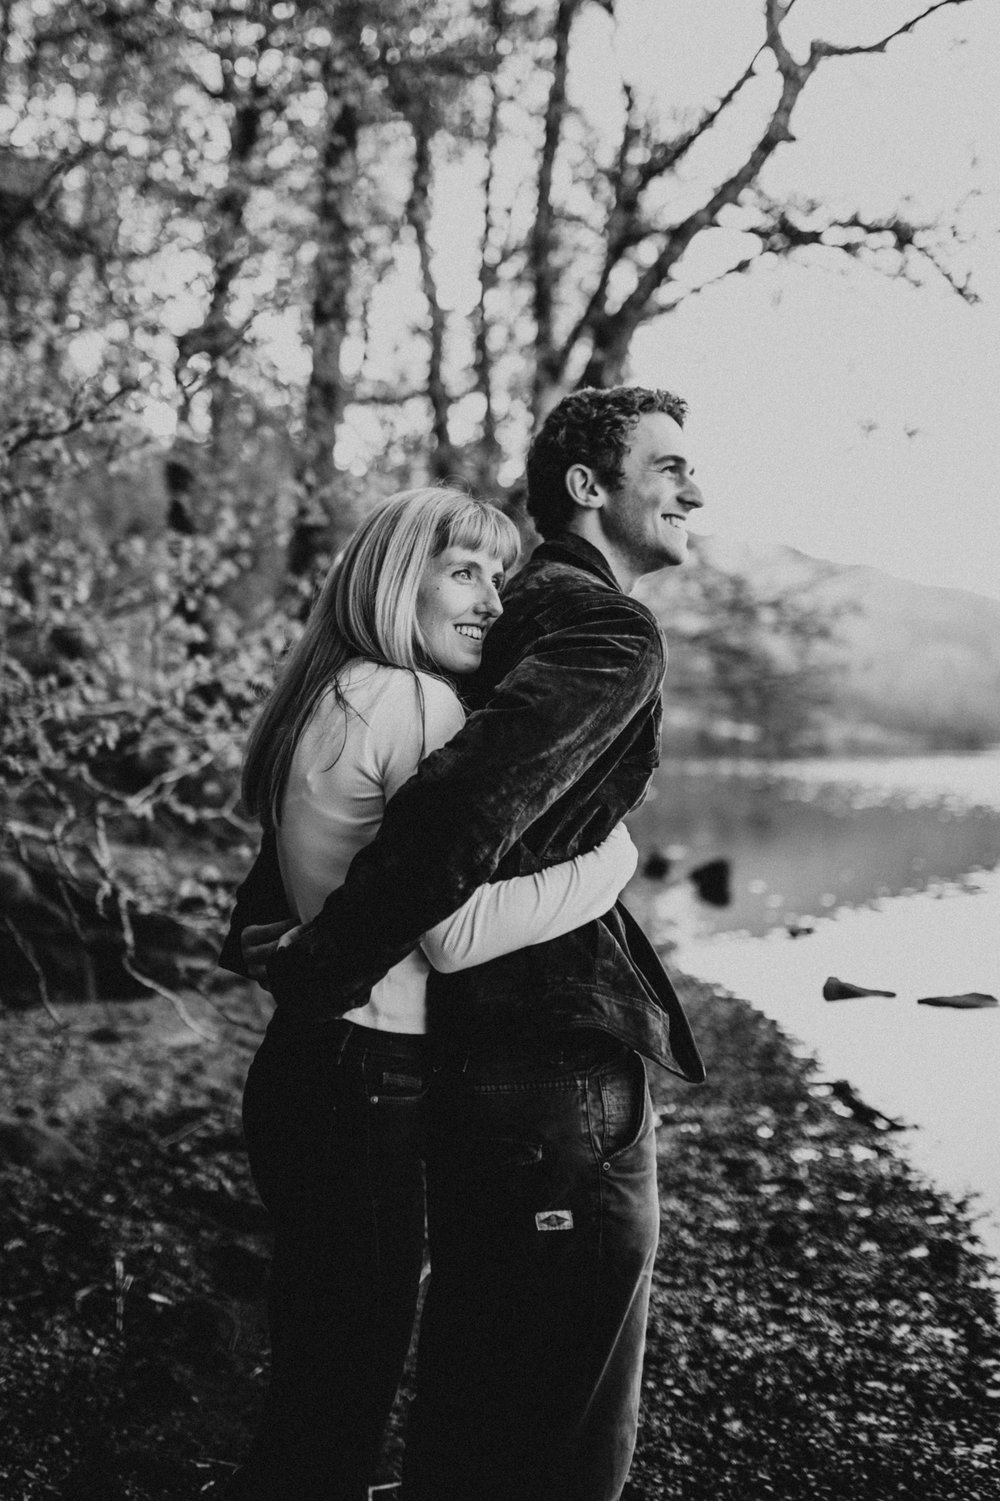 Claire-Clive-Engagement-Shoot-Lake-District-Darina-Stoda-Photography-70.jpg